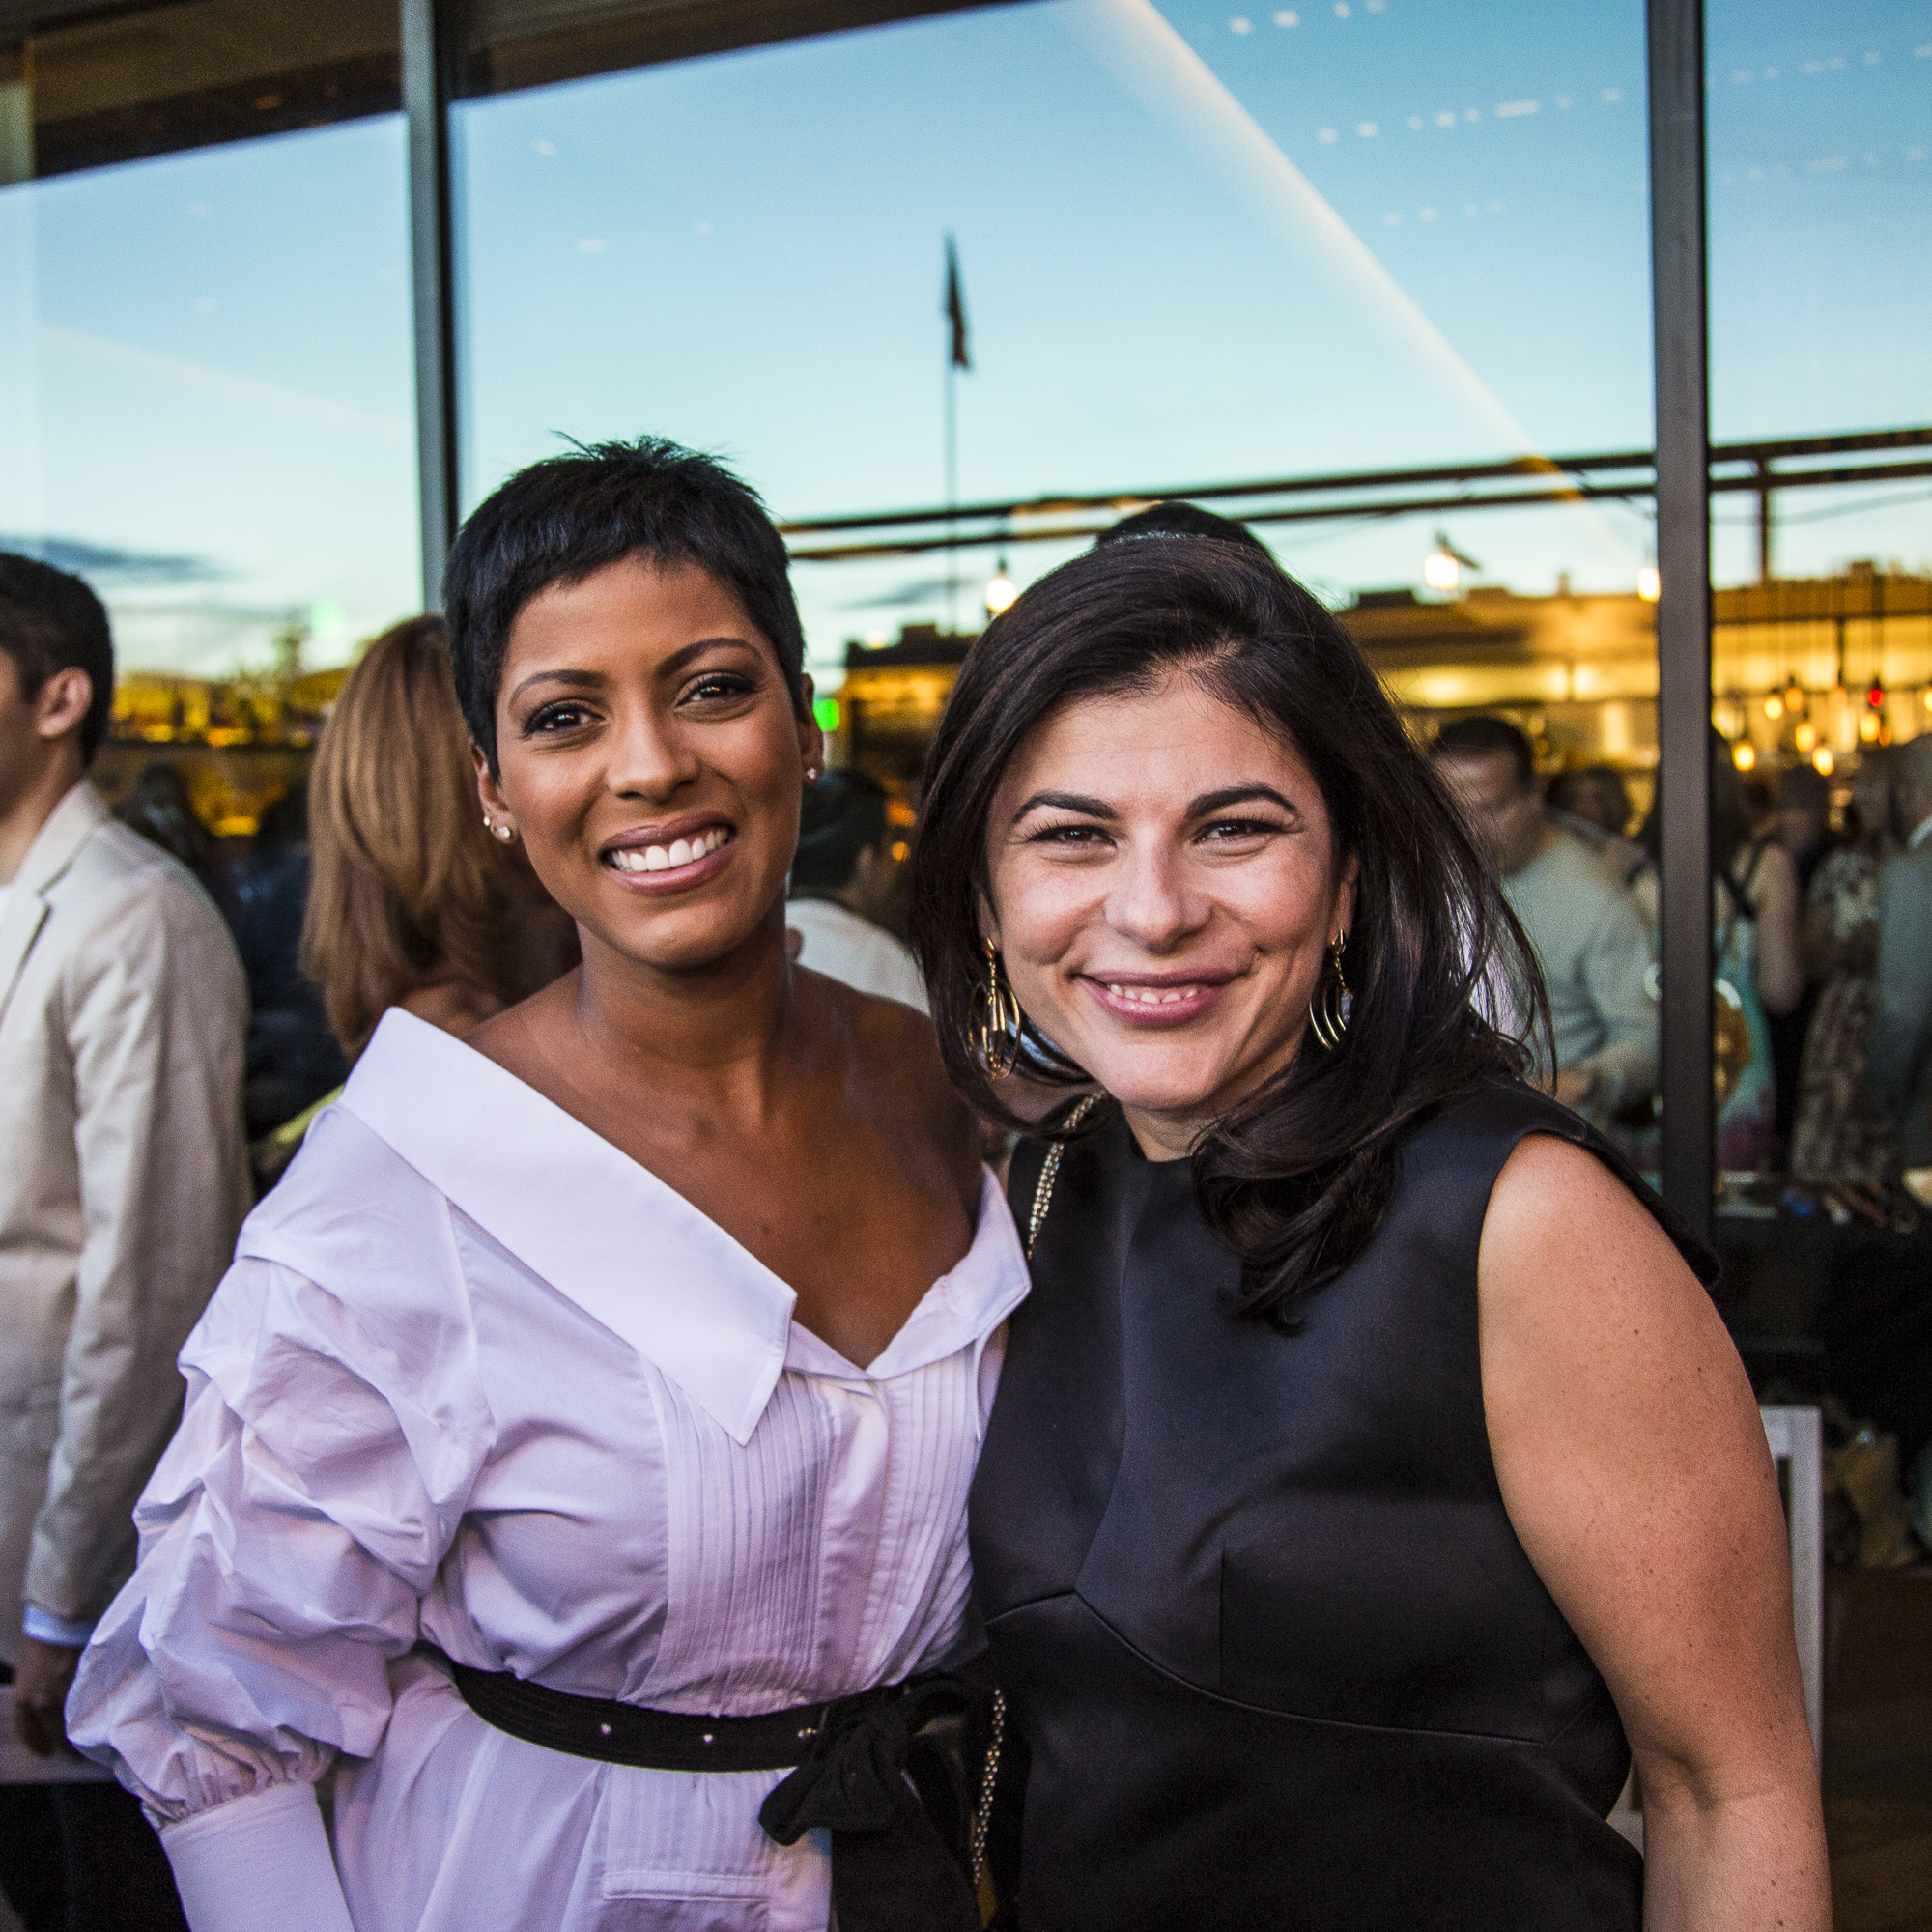 Tamron Hall and Food & Wine EIC Nilou Motamed attend the welcome reception at the Food & Wine Classic in Aspen.